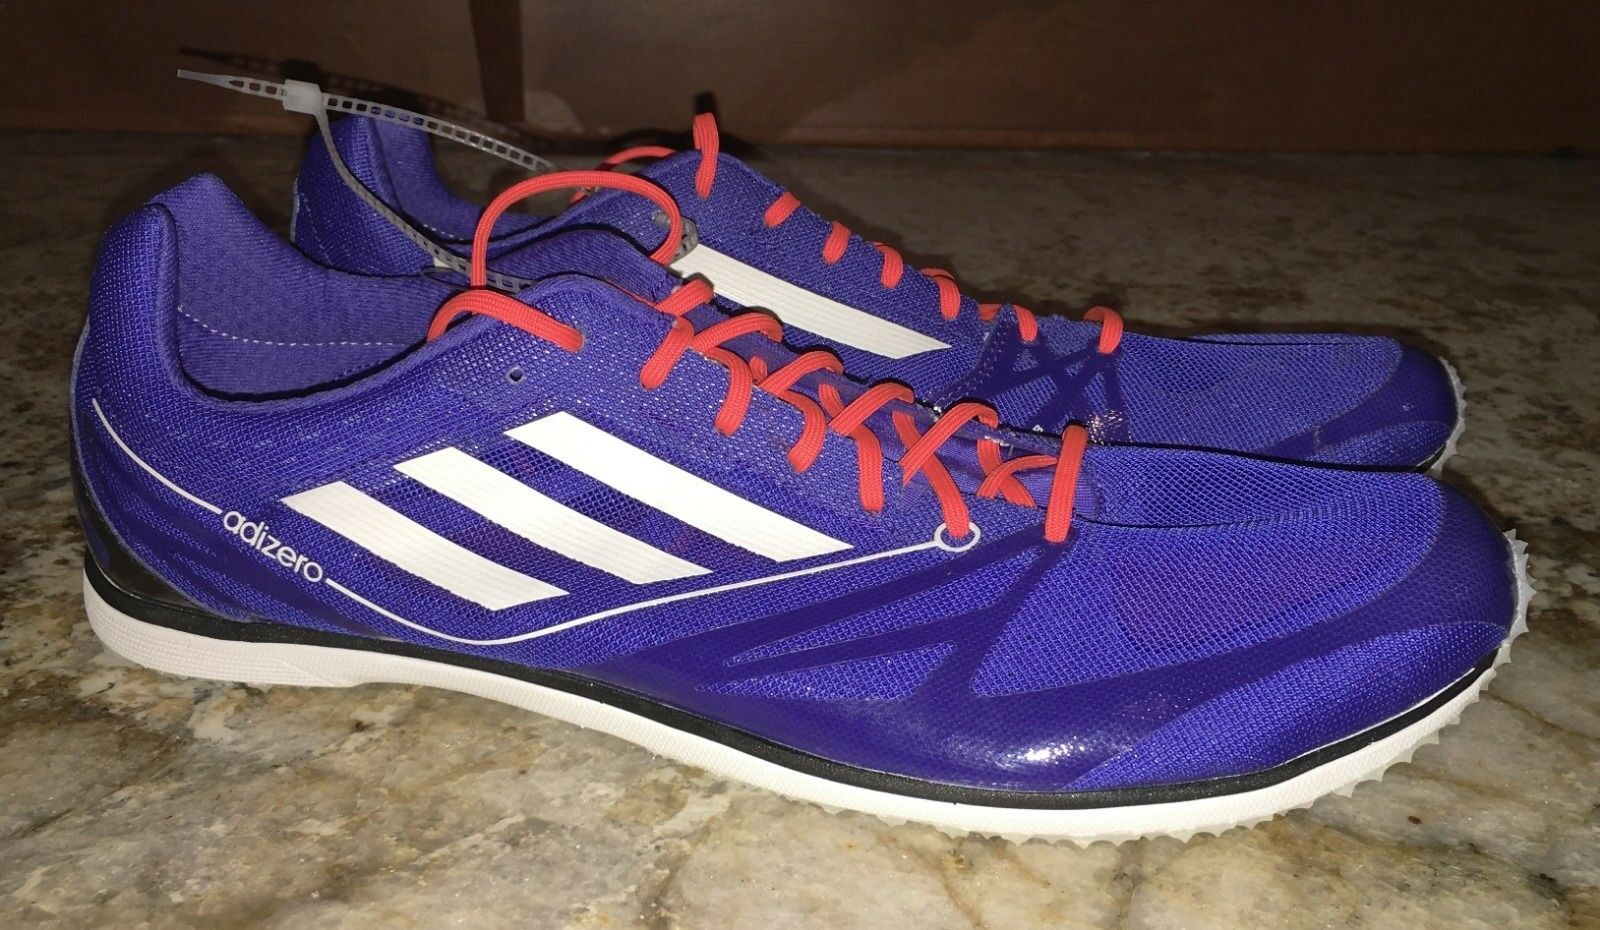 ADIDAS AdiZero Cadence 2 Shoes Distance Track Spikes Shoes 2 BLUE 4.5 6.5 7 9 10.5 13 14 bb830d